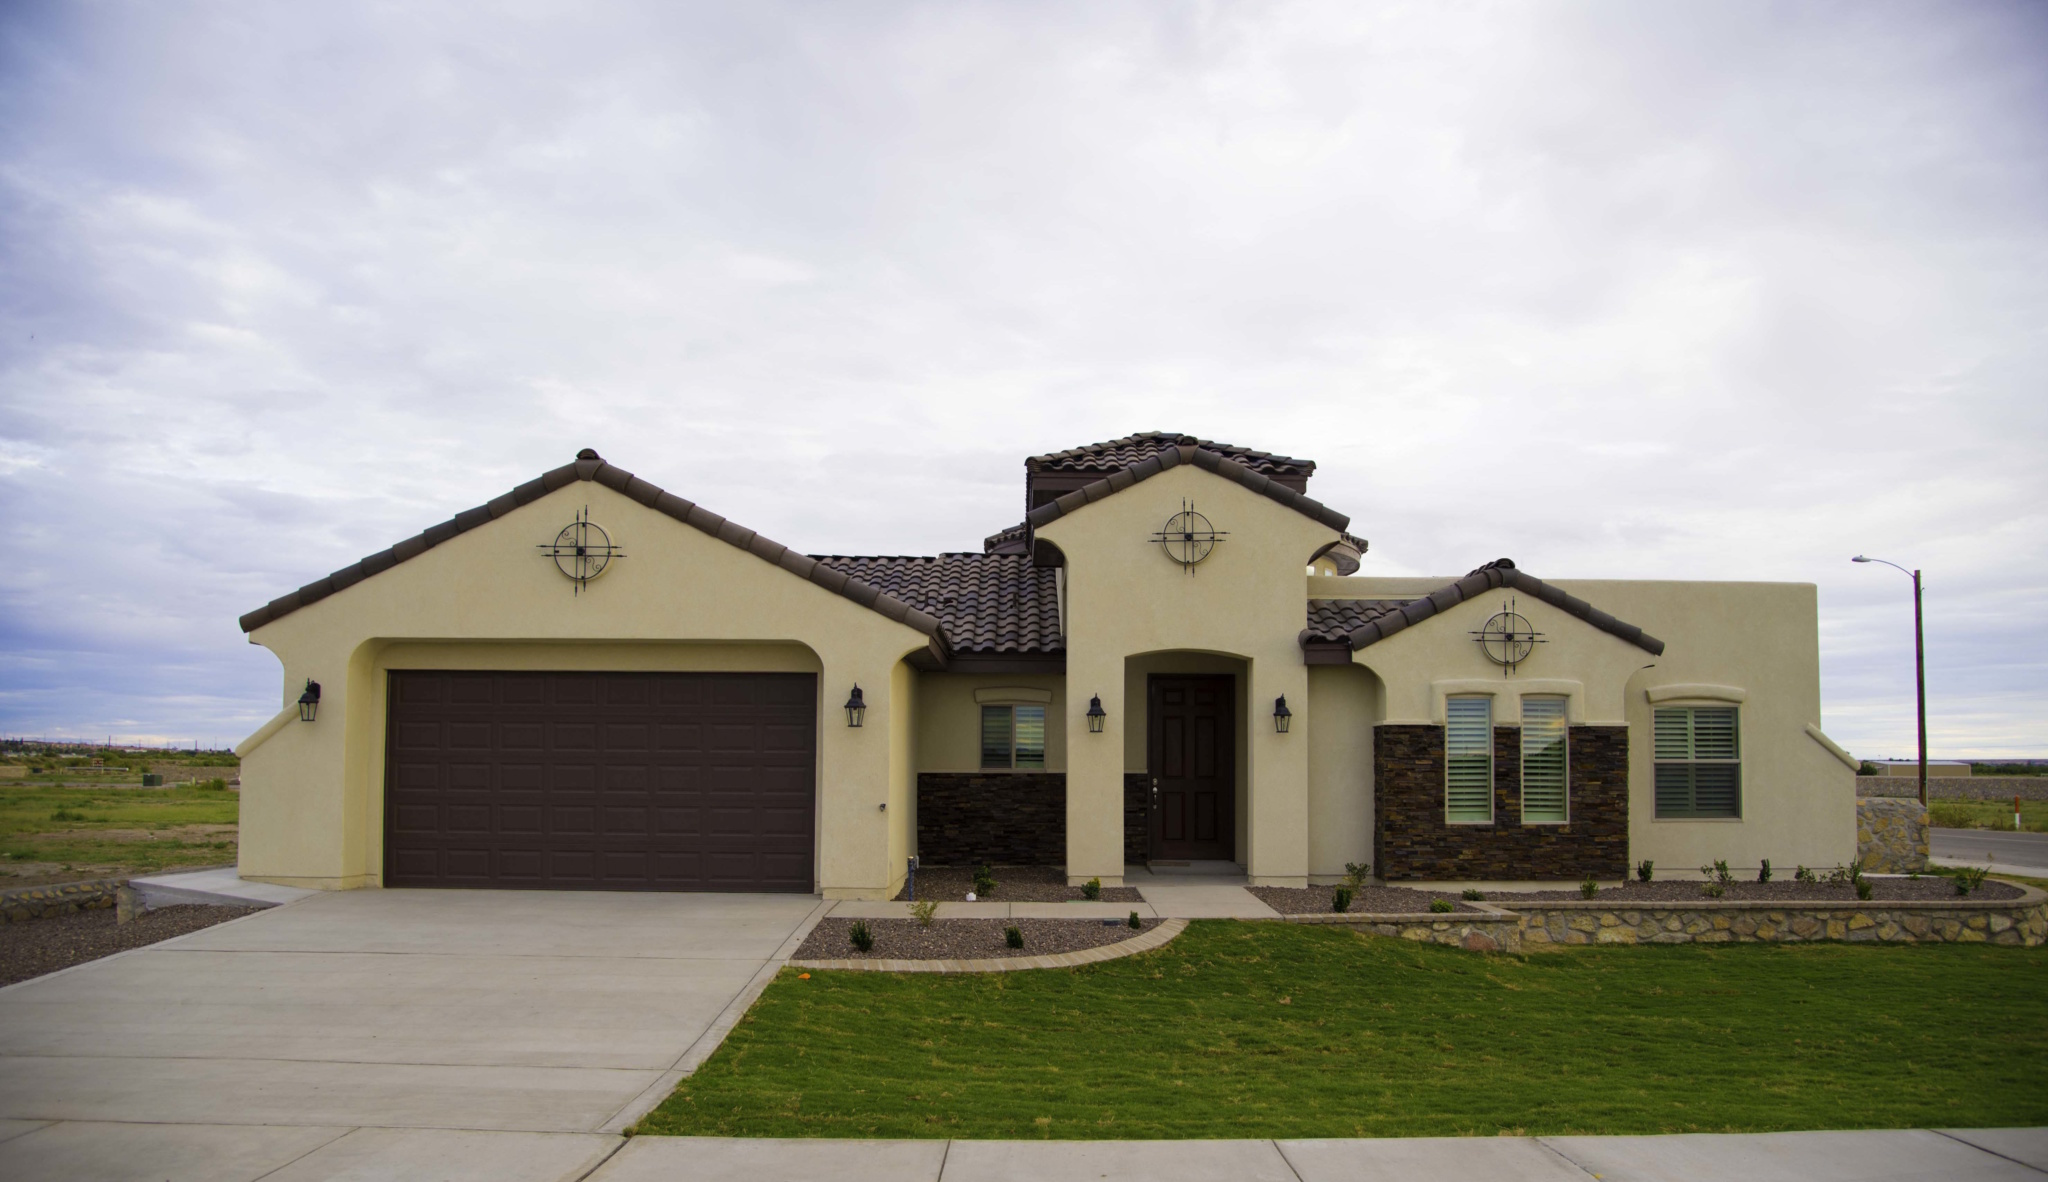 El Paso Custom Homes Padilla Homes Murcia Haciendas